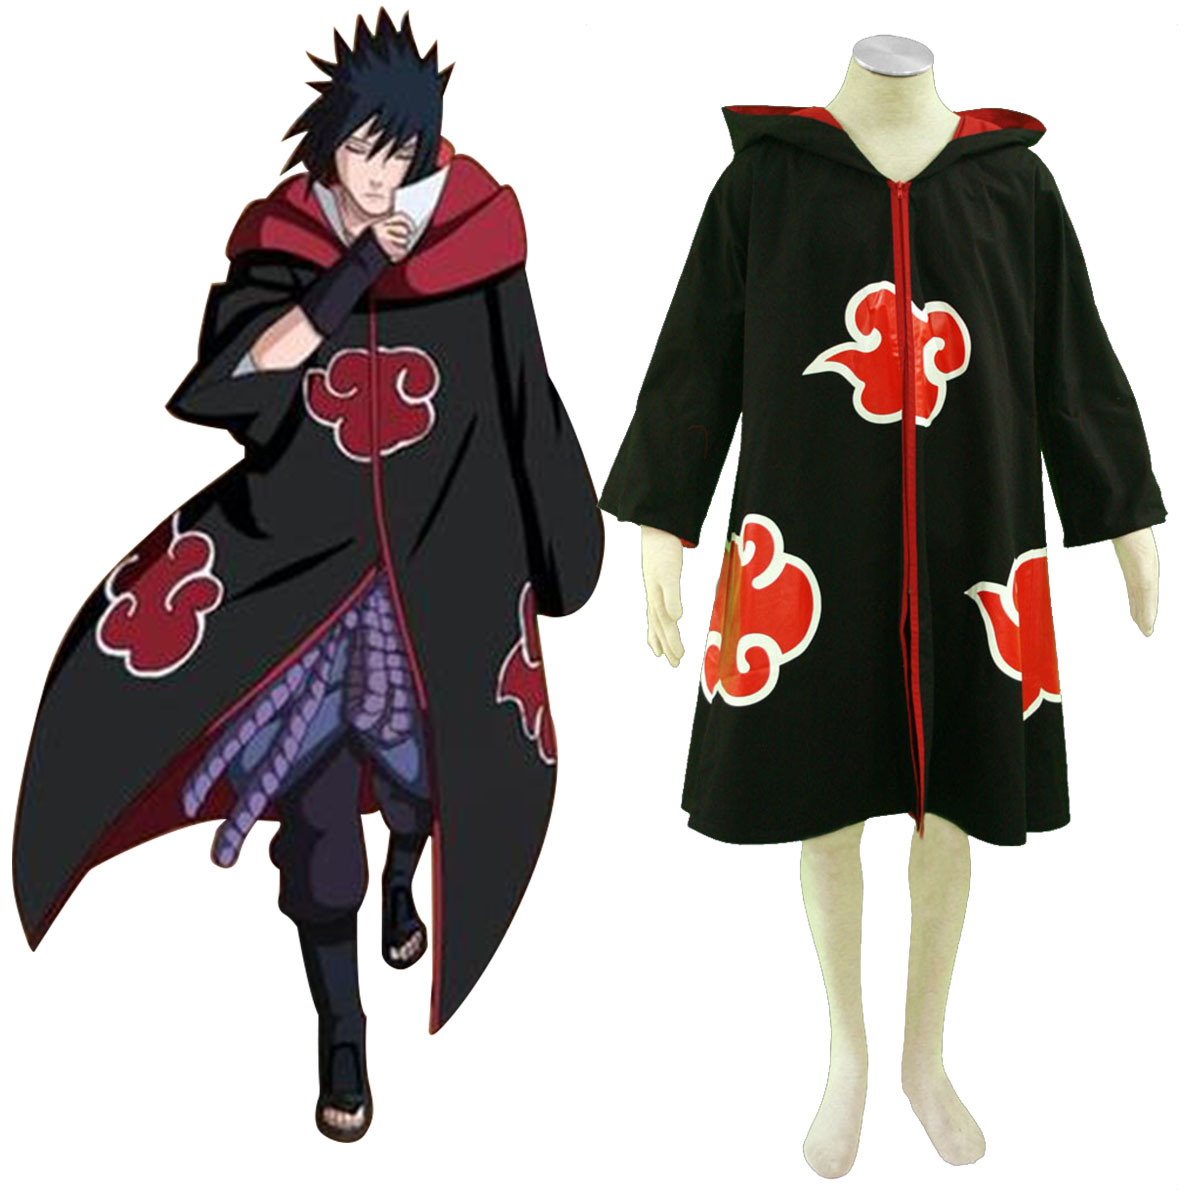 Naruto Taka Organization Anime Cosplay Costumes Outfit